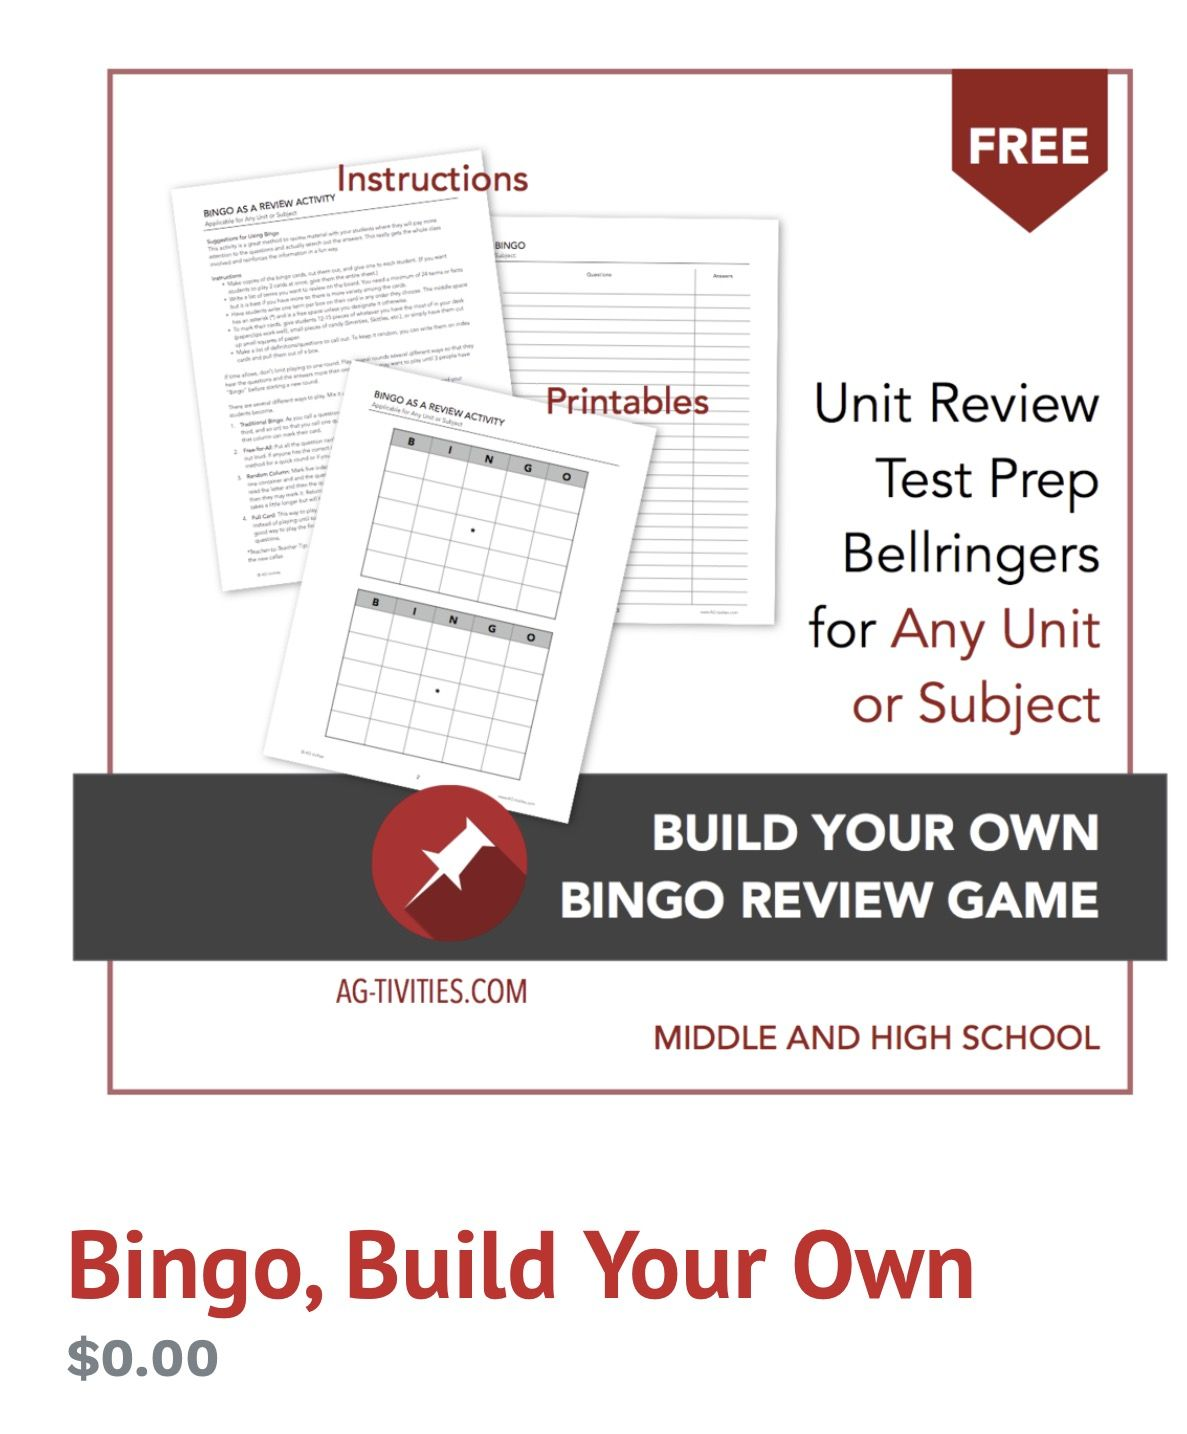 Free Worksheet Activity Build Your Own Bingo Ag